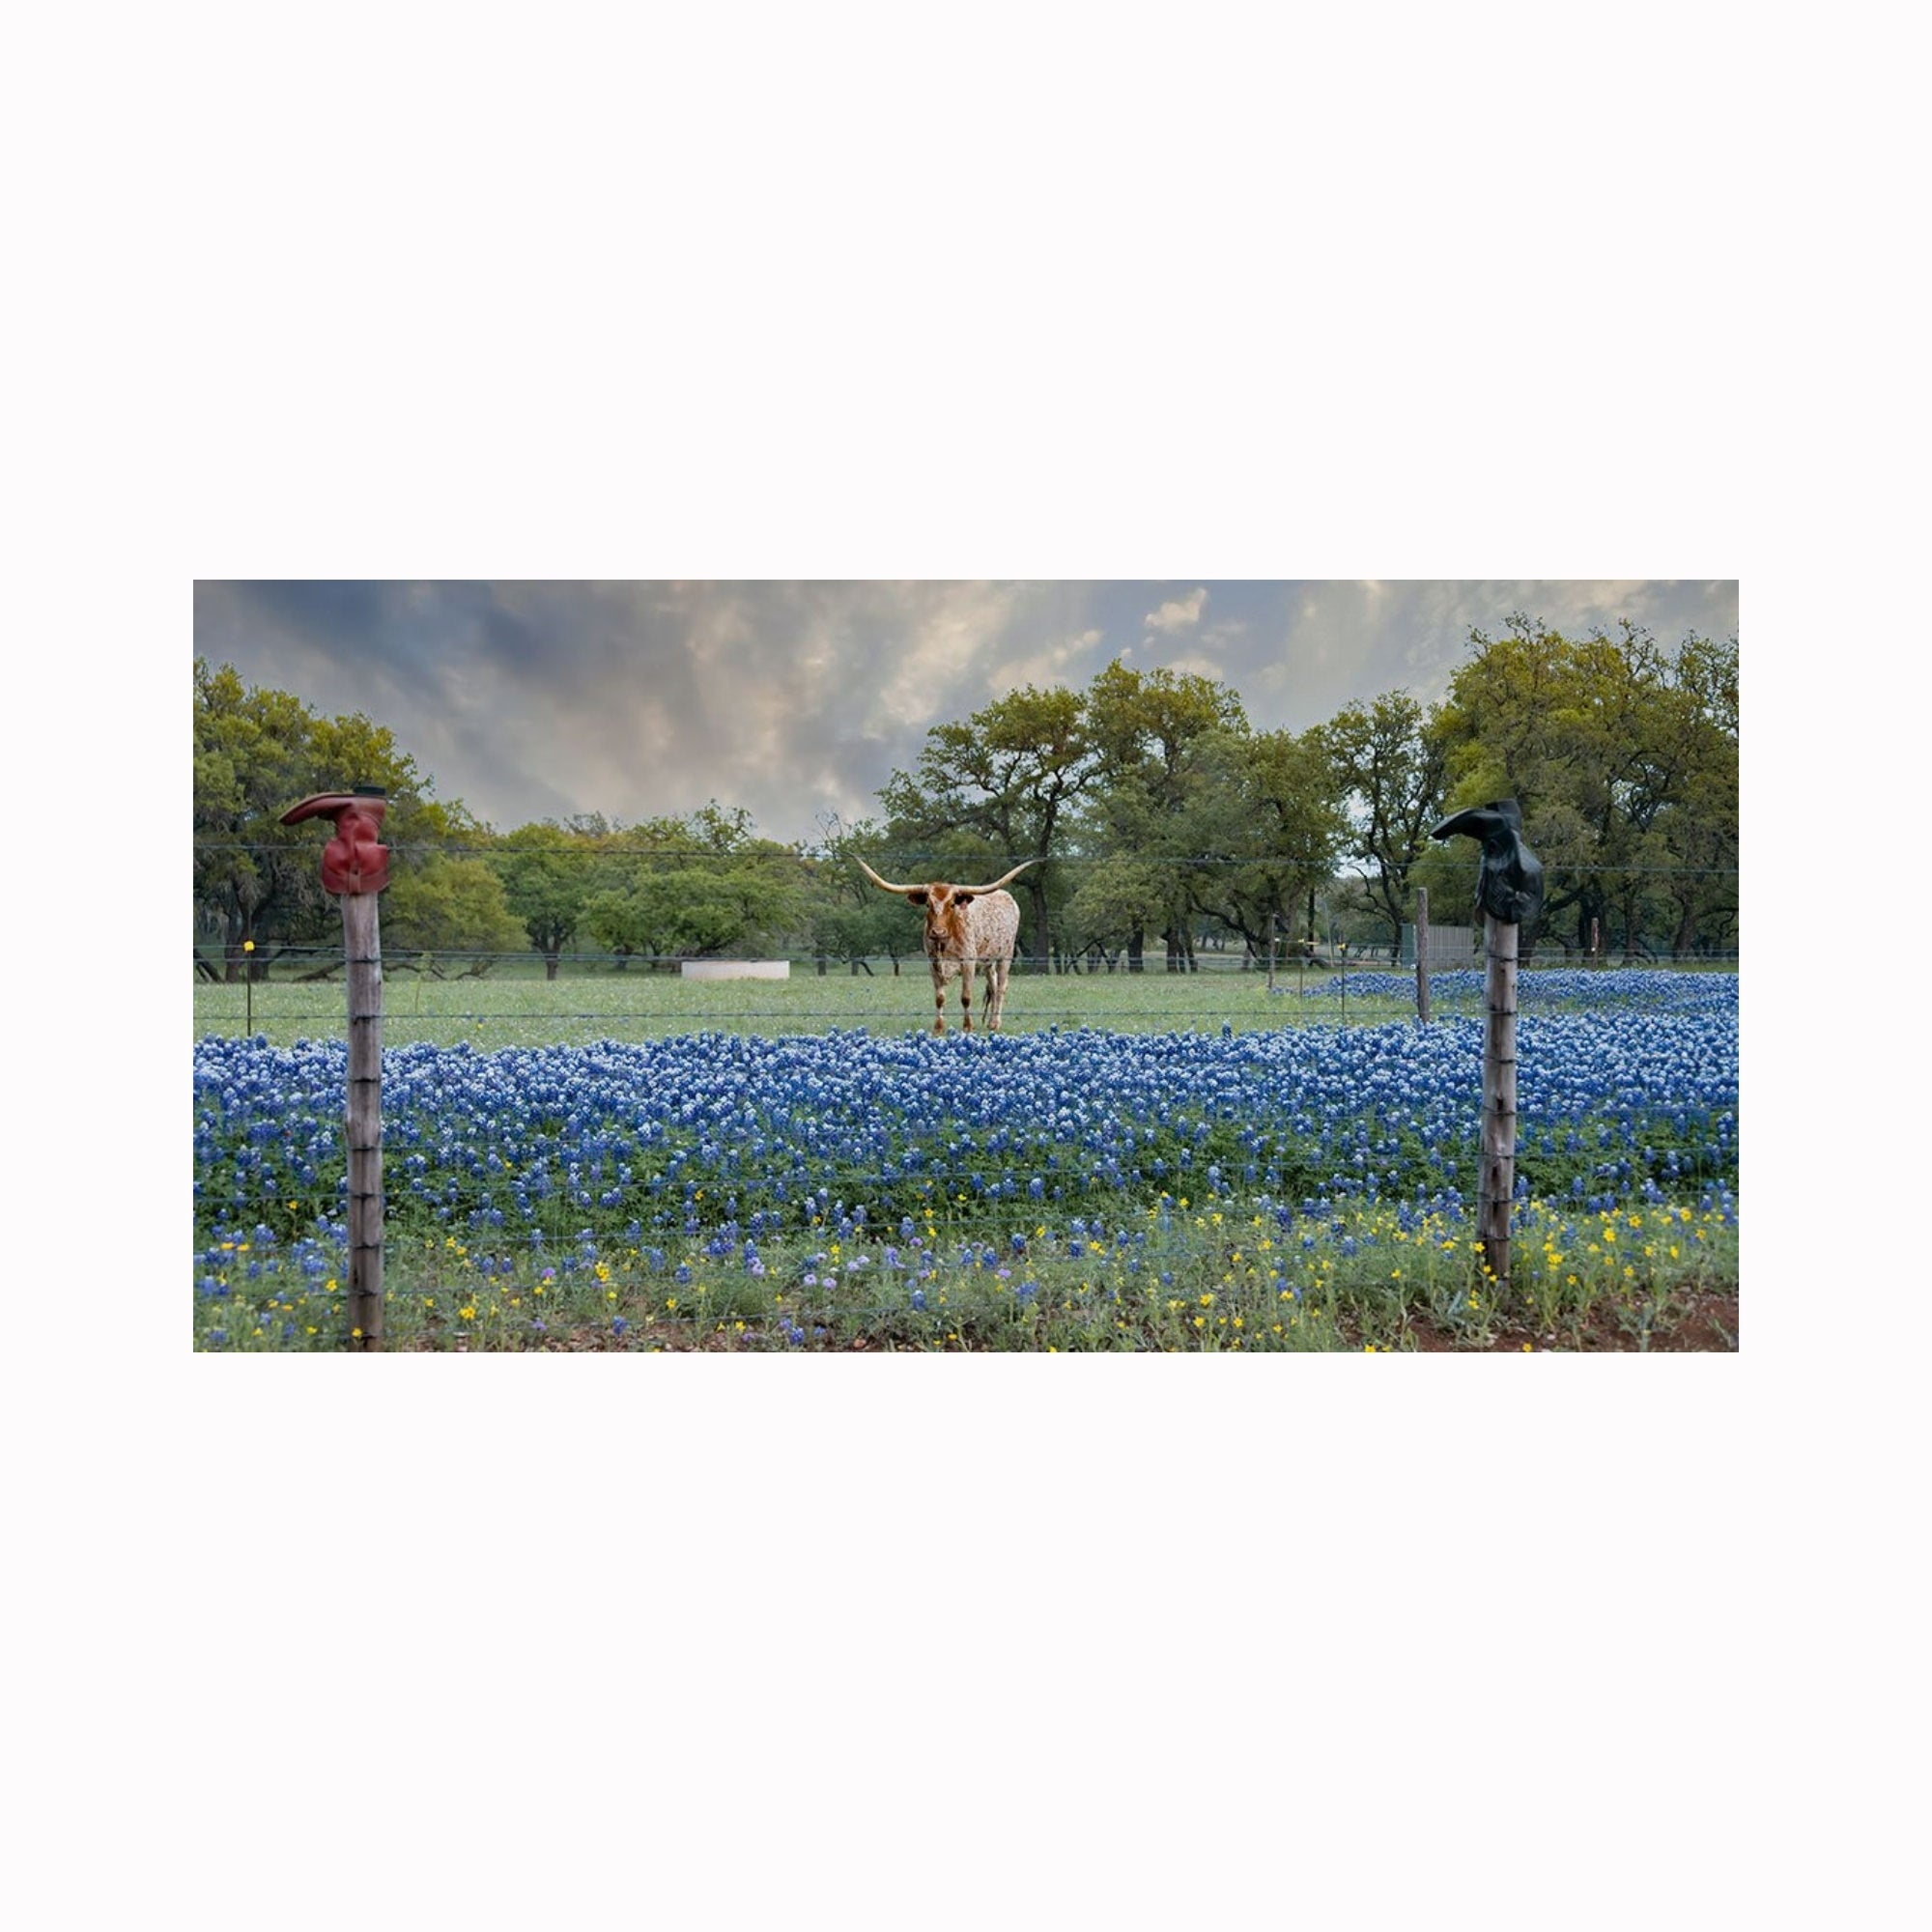 """Oh, Hello There"" by Texas photographer Mark Holly 